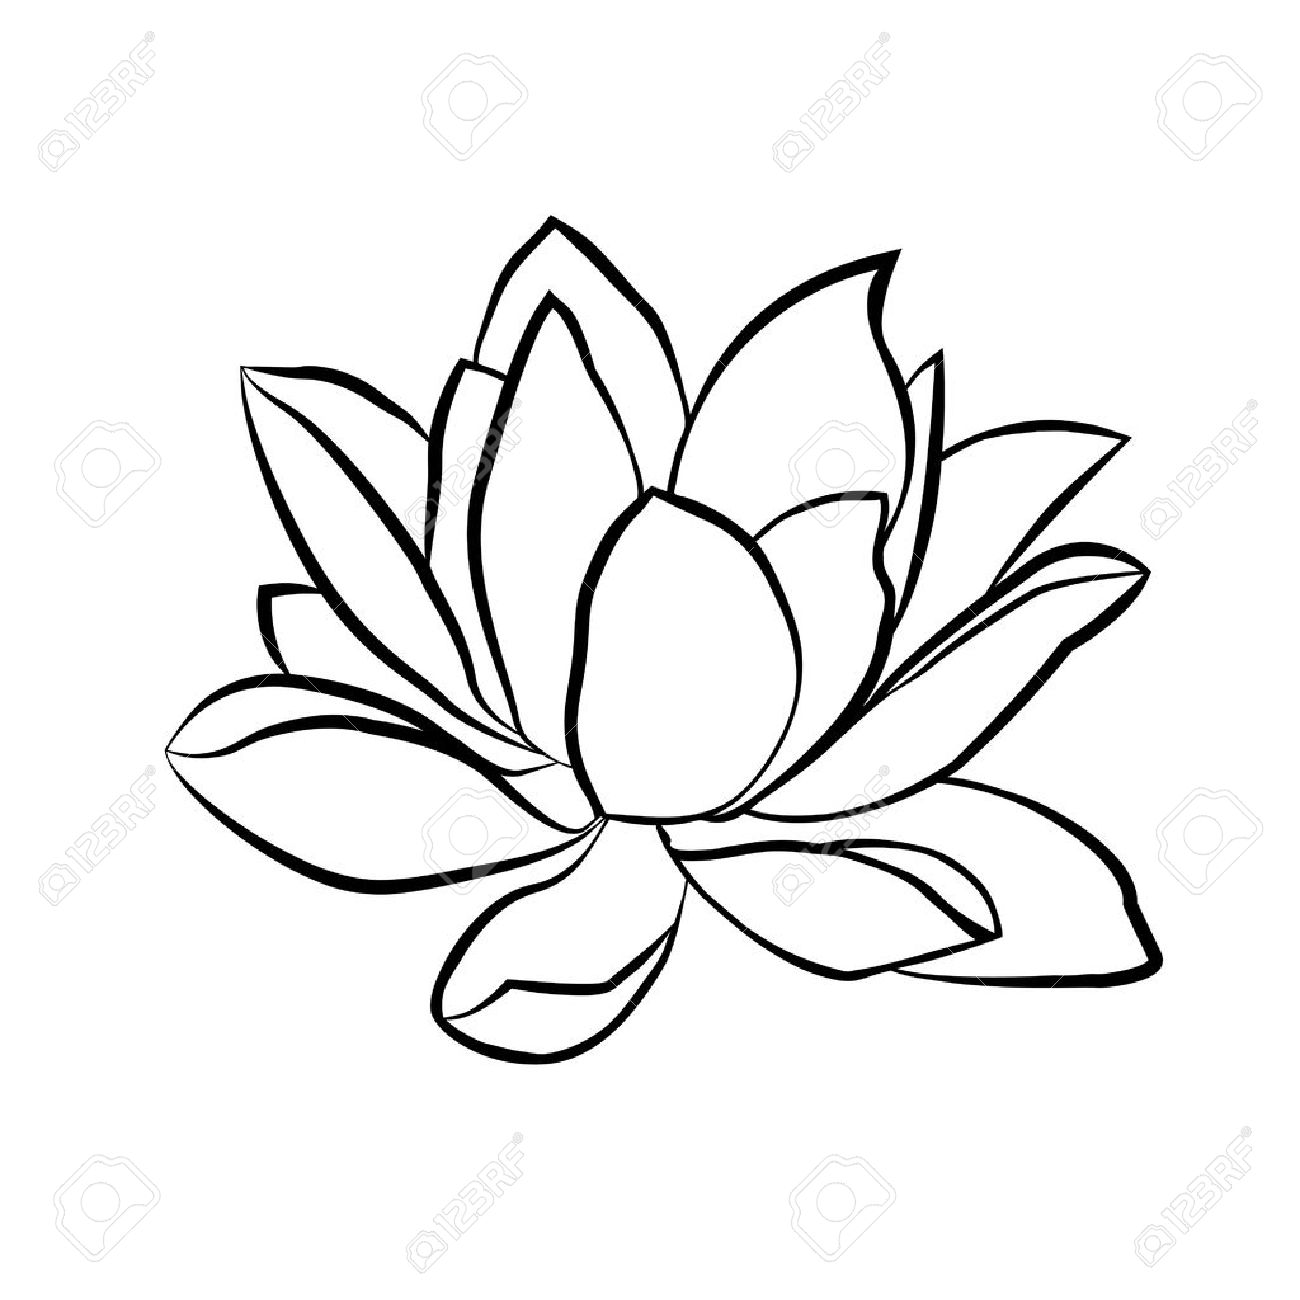 1300x1300 Lotus Flower Clipart Black And White Clip Art Images